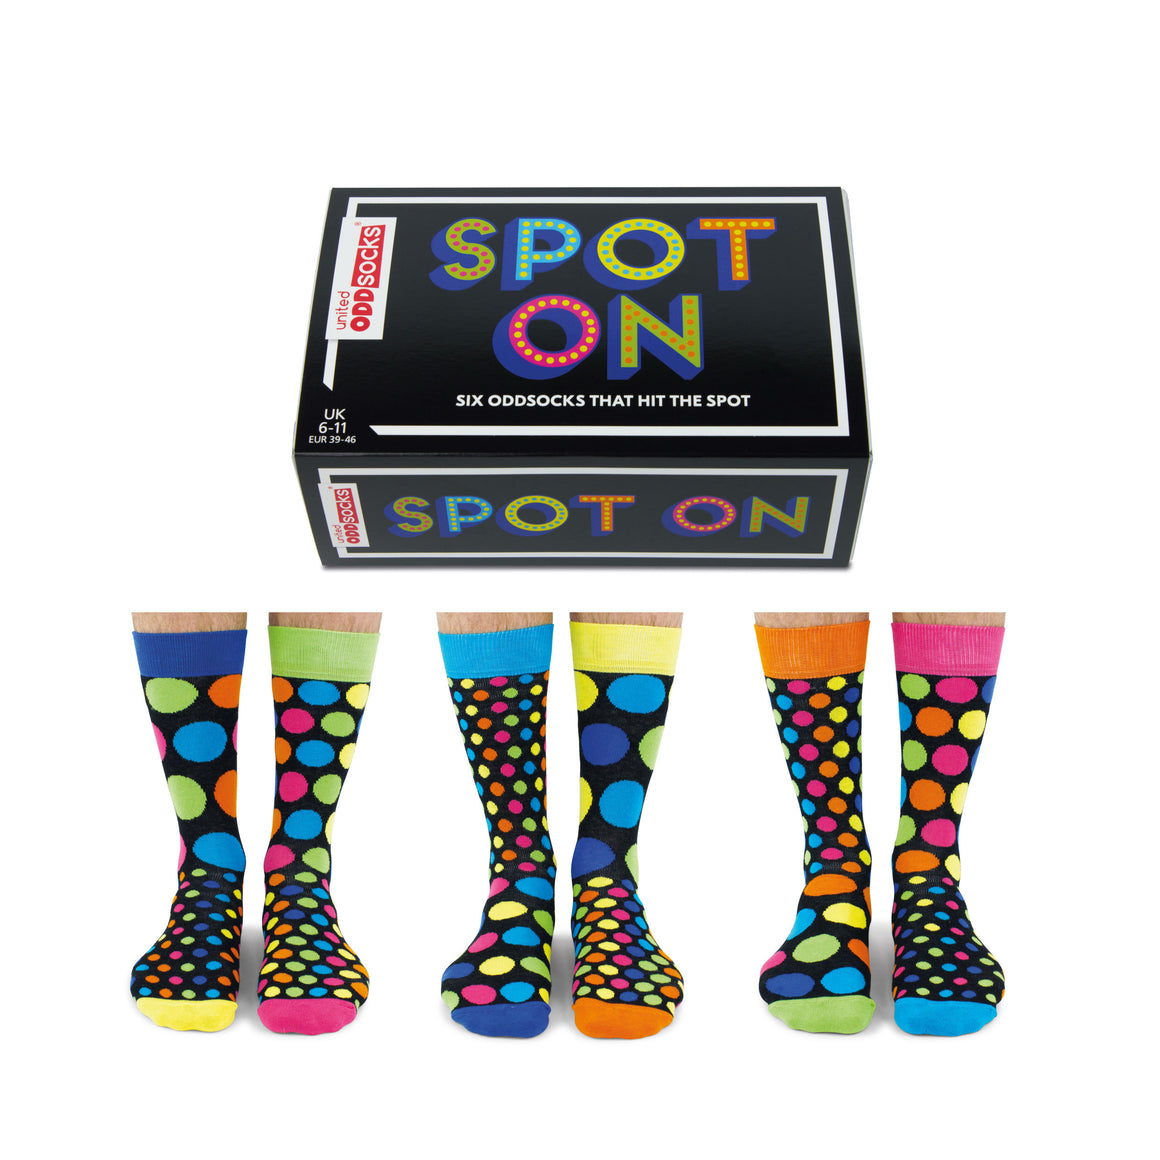 United Odd Socks Spot On Mens Gift Box - The Love Trees